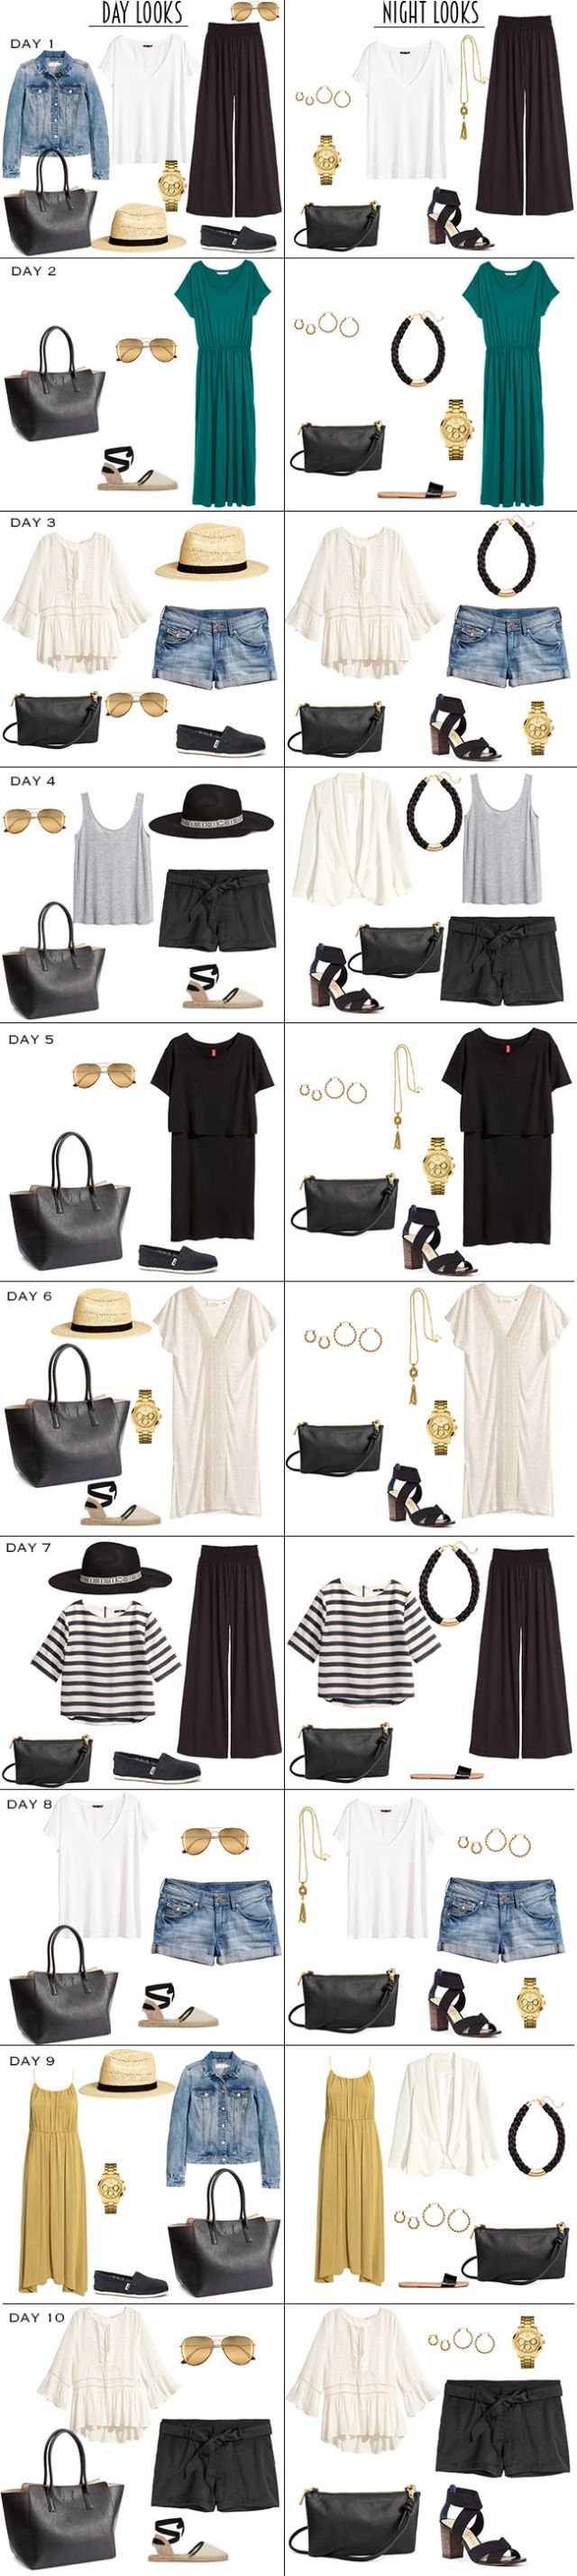 10 Day To Night Looks for 14 days in the Caribbean. The whole Packing List is on the Blog. #packinglist #packinglight #travellight